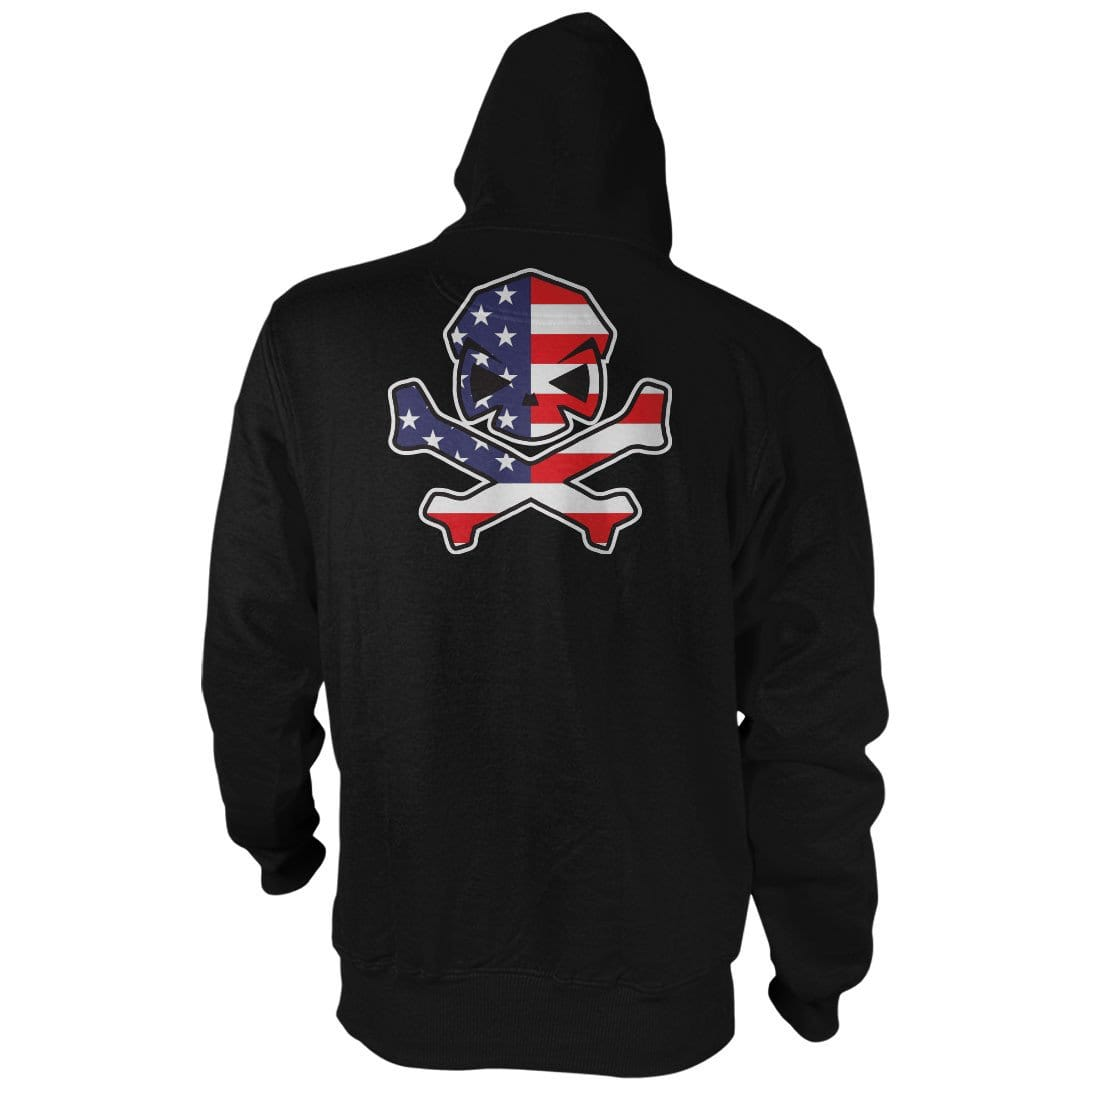 Freedom Hoodie - Black - Hoodies - Pipe Hitters Union